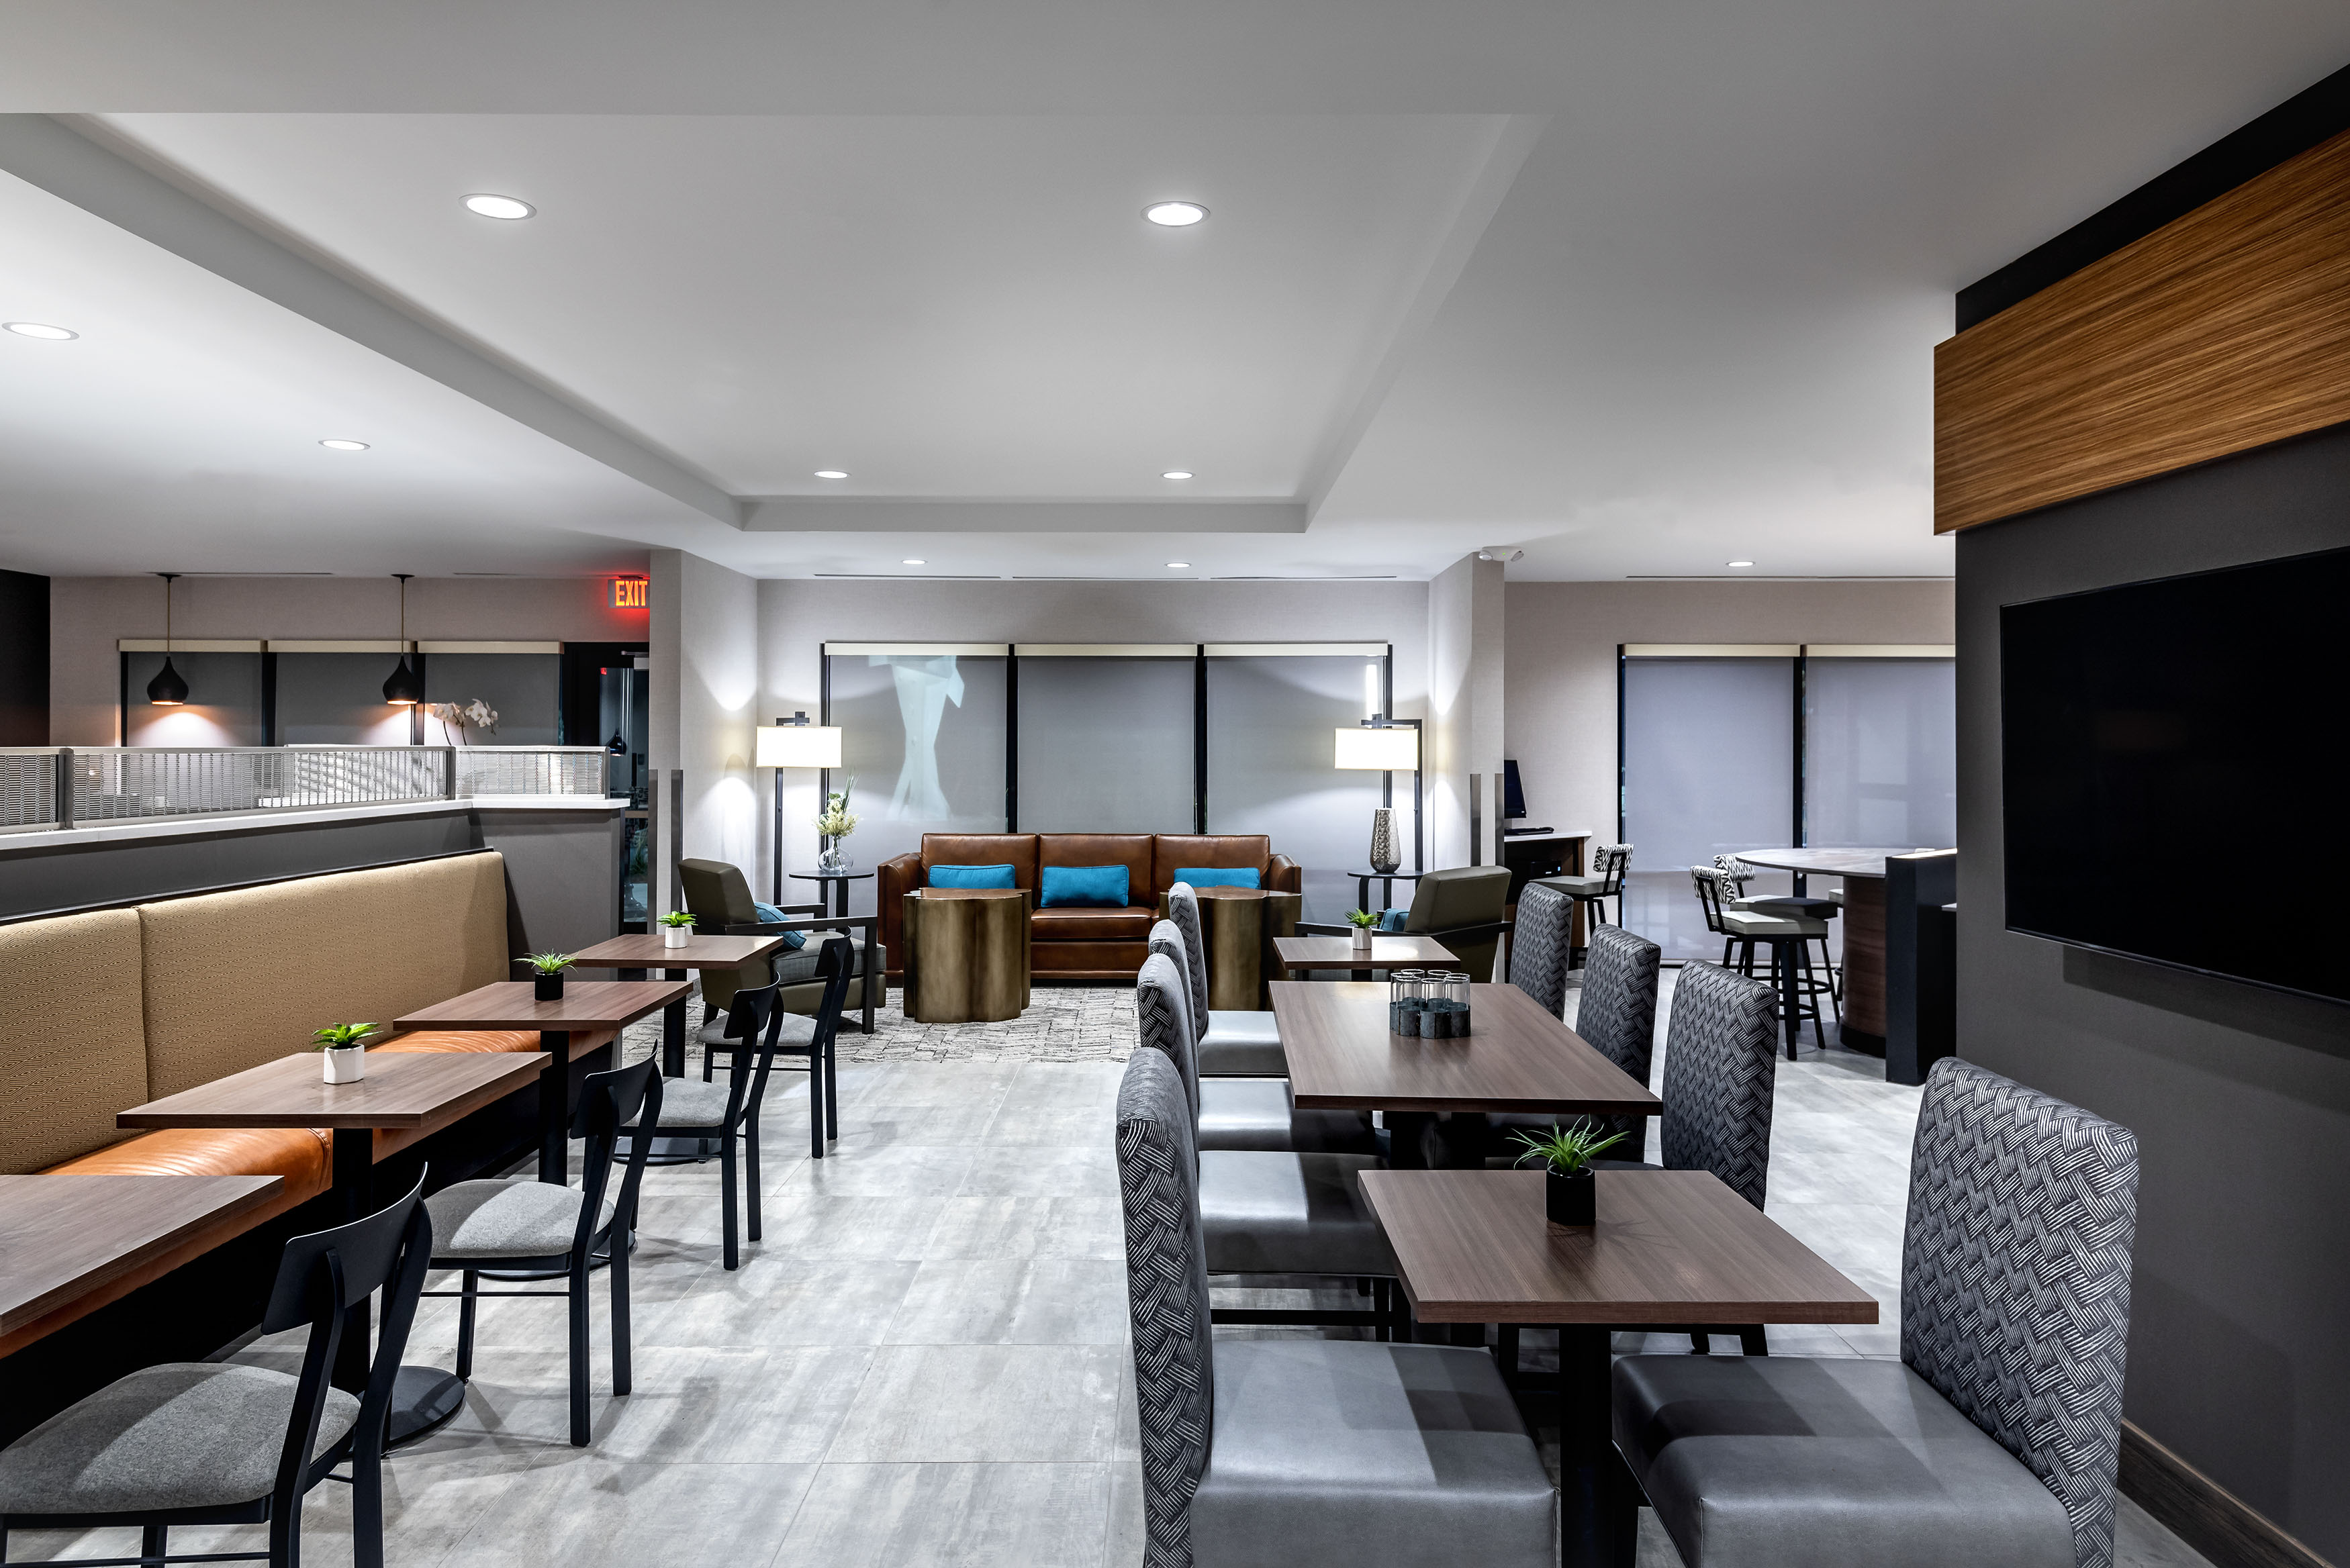 Towne-place-suite-marriott-hotels-towneplace-hotel-whitefish-montana-dining-room-opposite